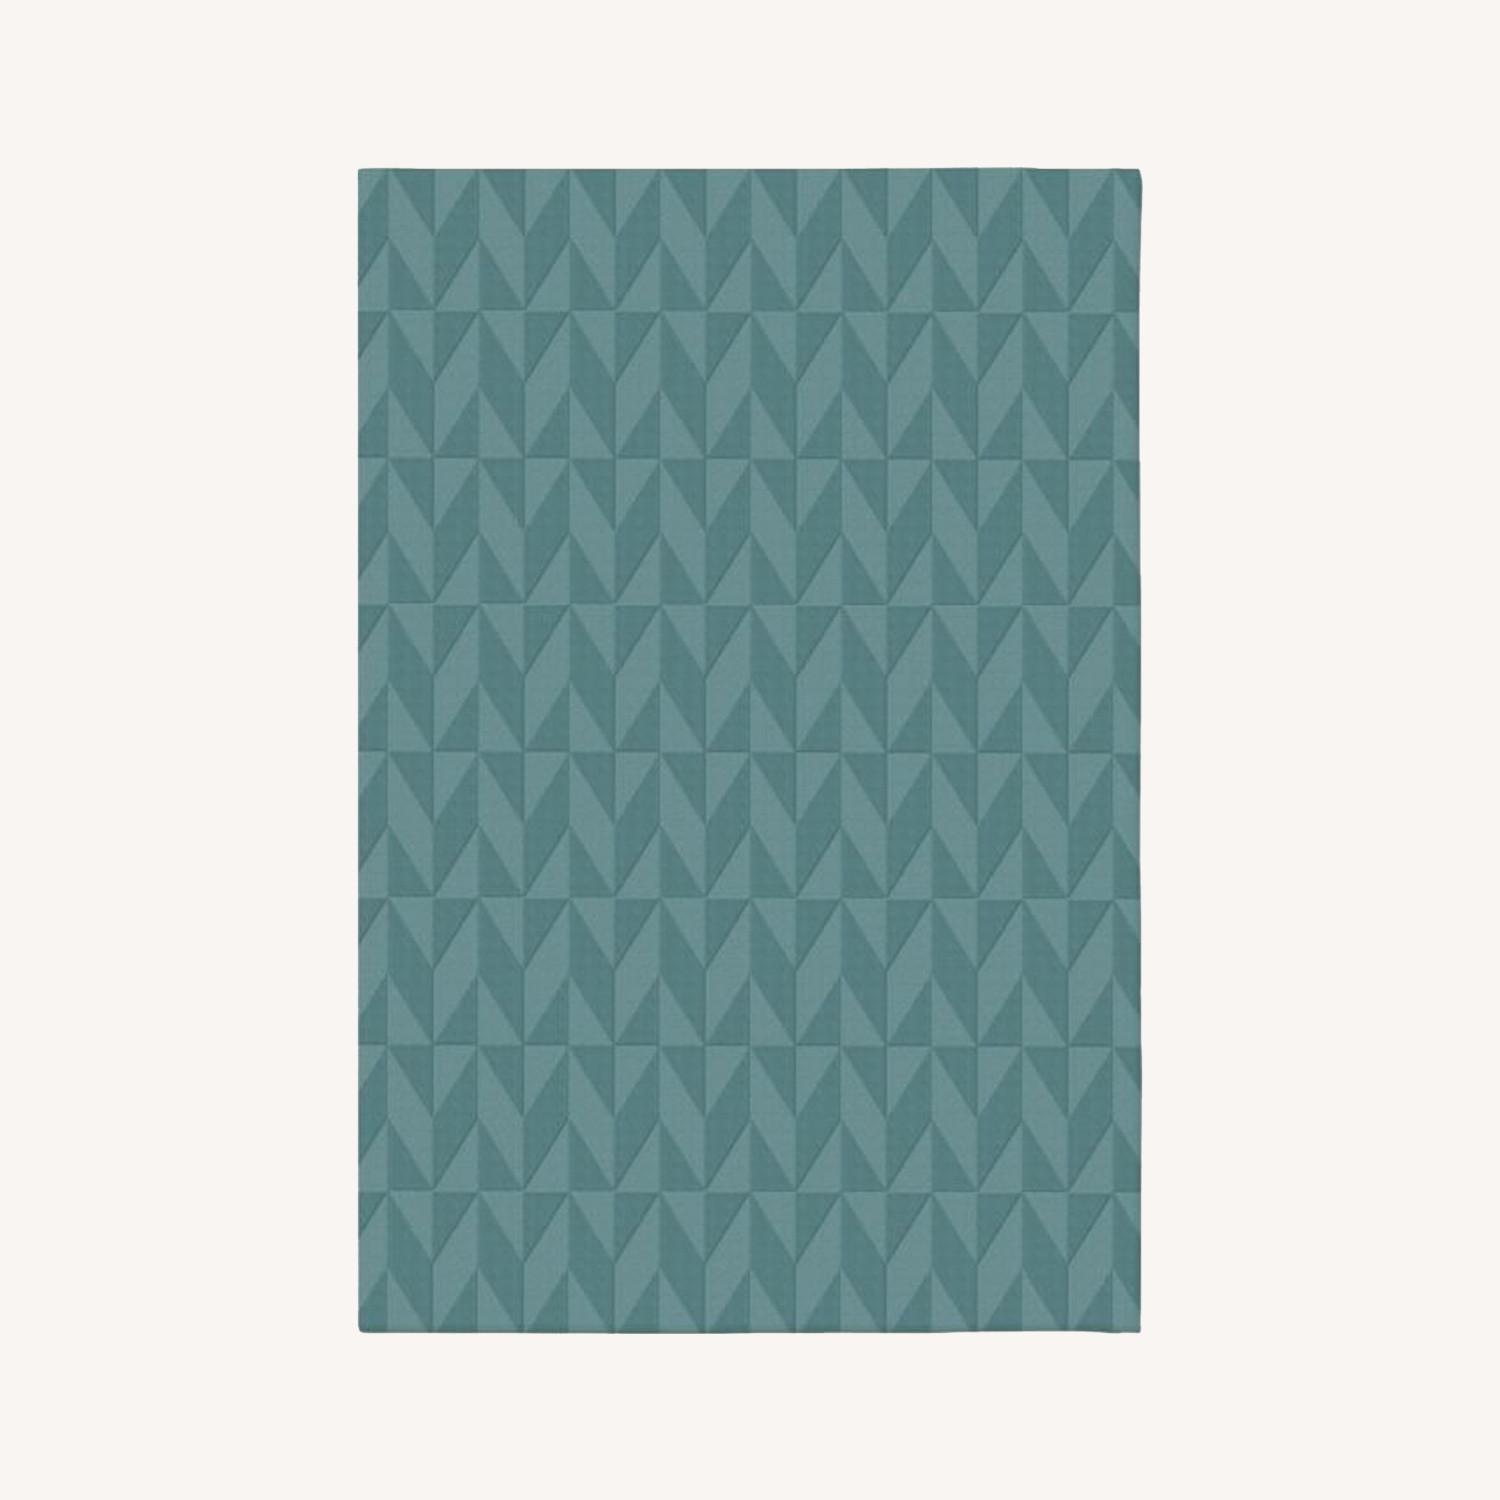 West Elm SPO Andes Rug, True Blue - image-0